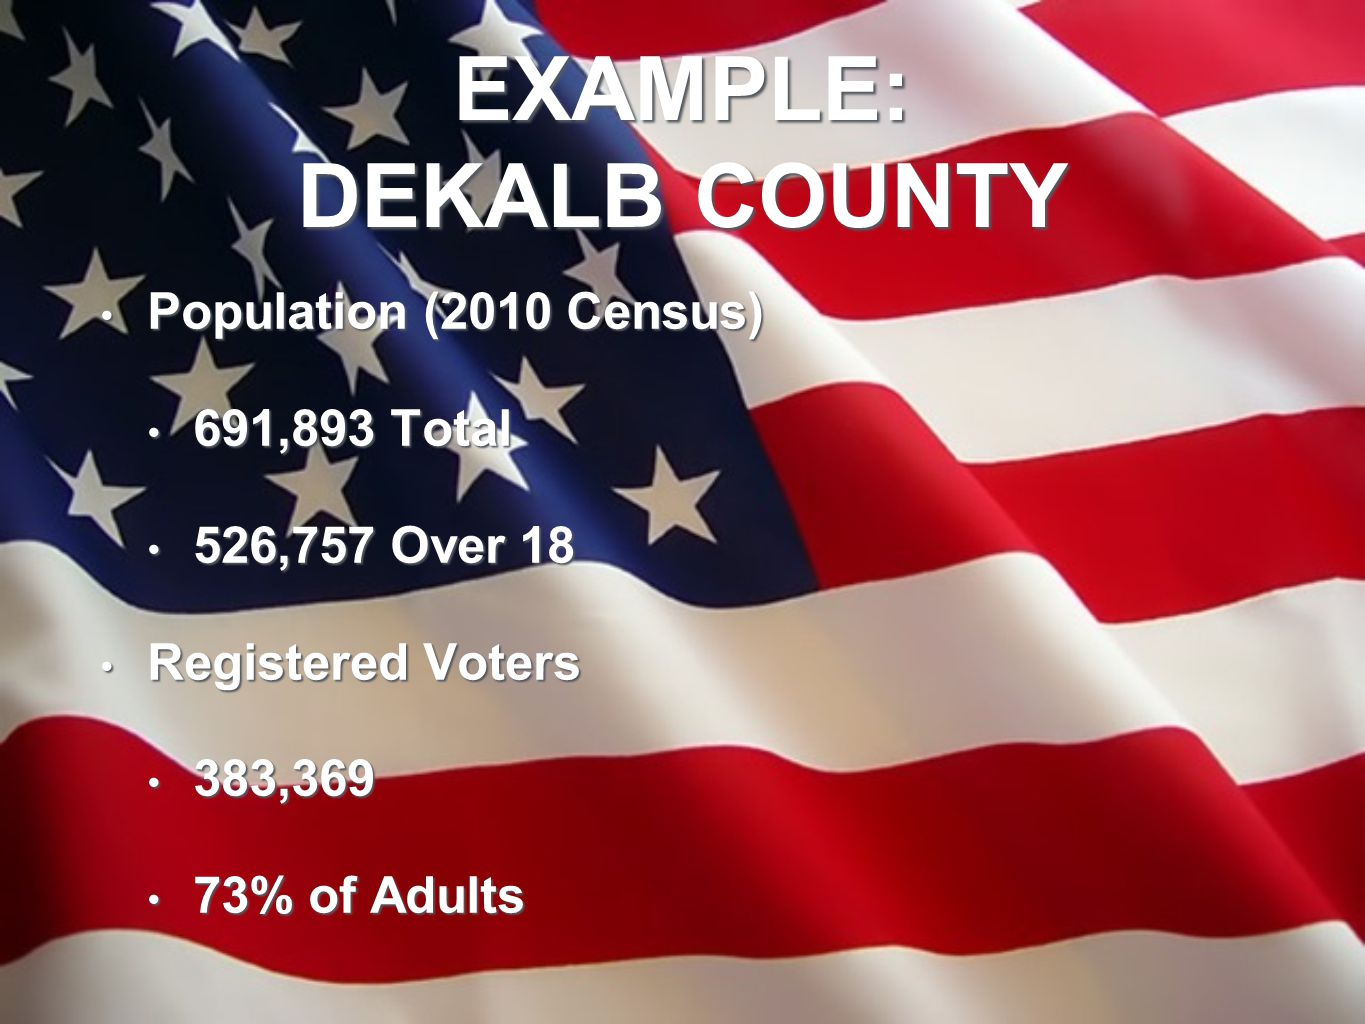 EXAMPLE: DEKALB COUNTY Population (2010 Census) Population (2010 Census) 691,893 Total 691,893 Total 526,757 Over 18 526,757 Over 18 Registered Voters